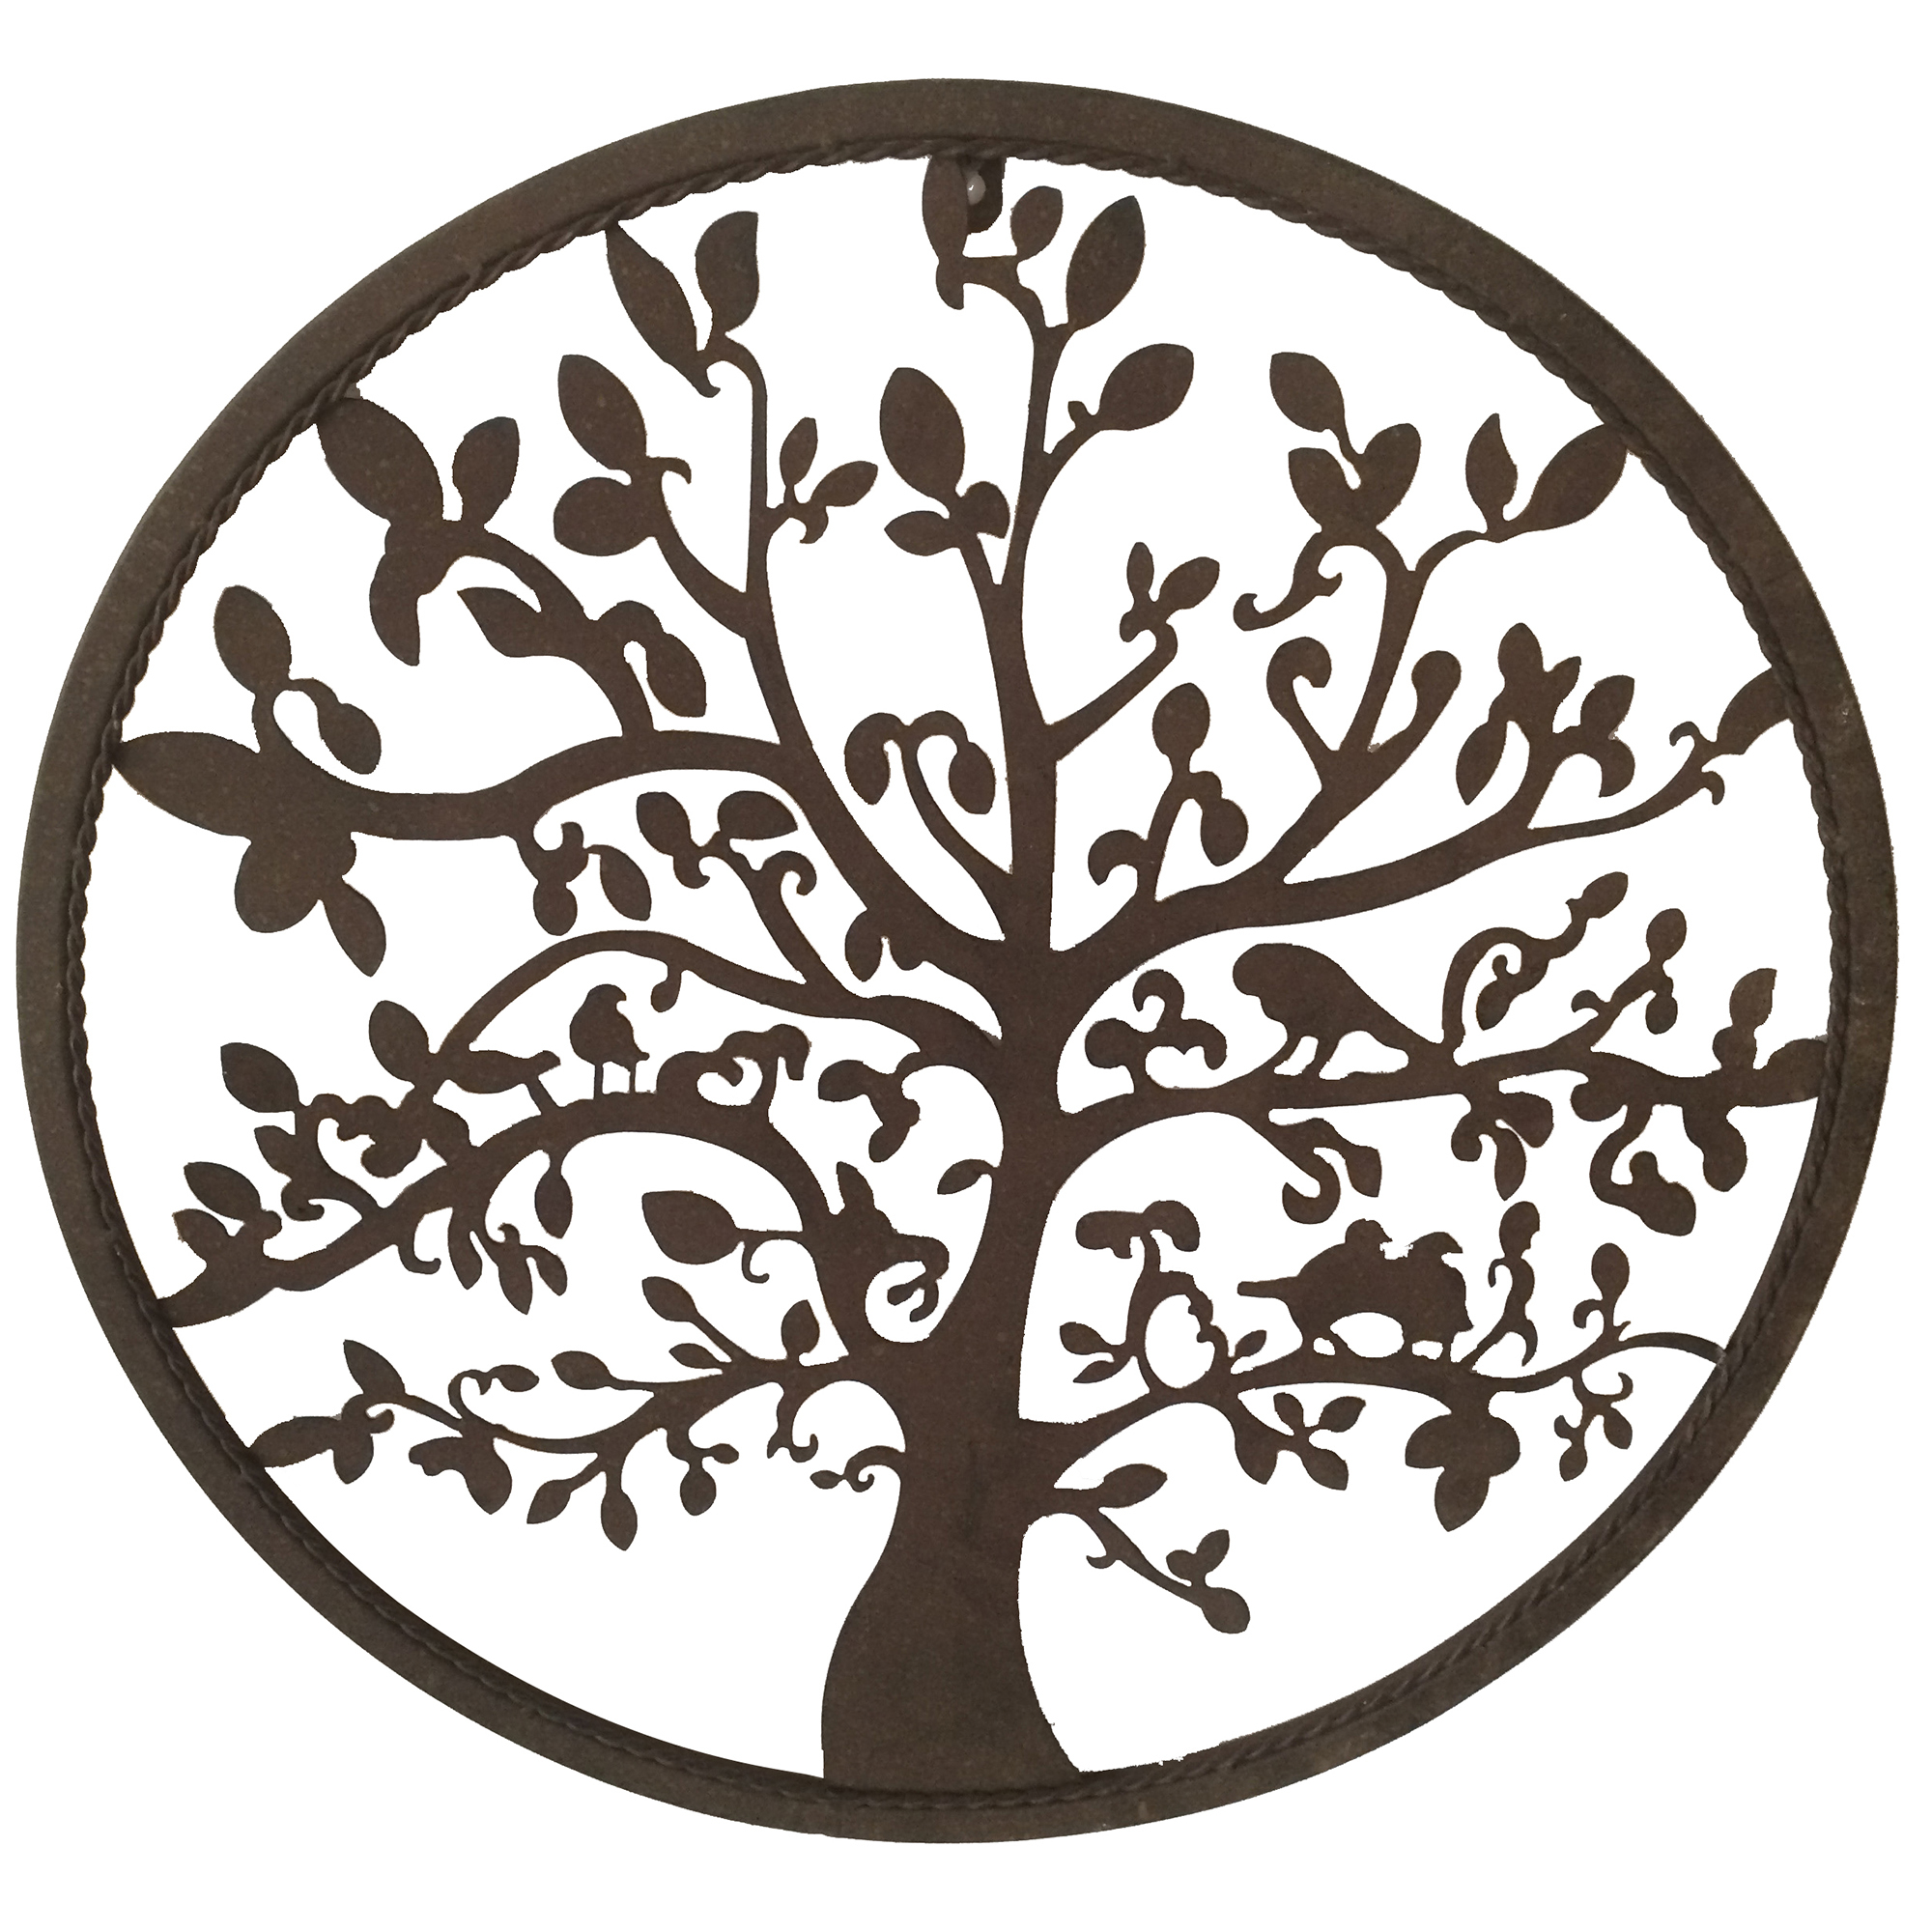 2f5fa9eab059 SKU #HSTR1152 Circular Tree of Life Metal Wall Decor is also sometimes  listed under the following manufacturer numbers: 71220TRE